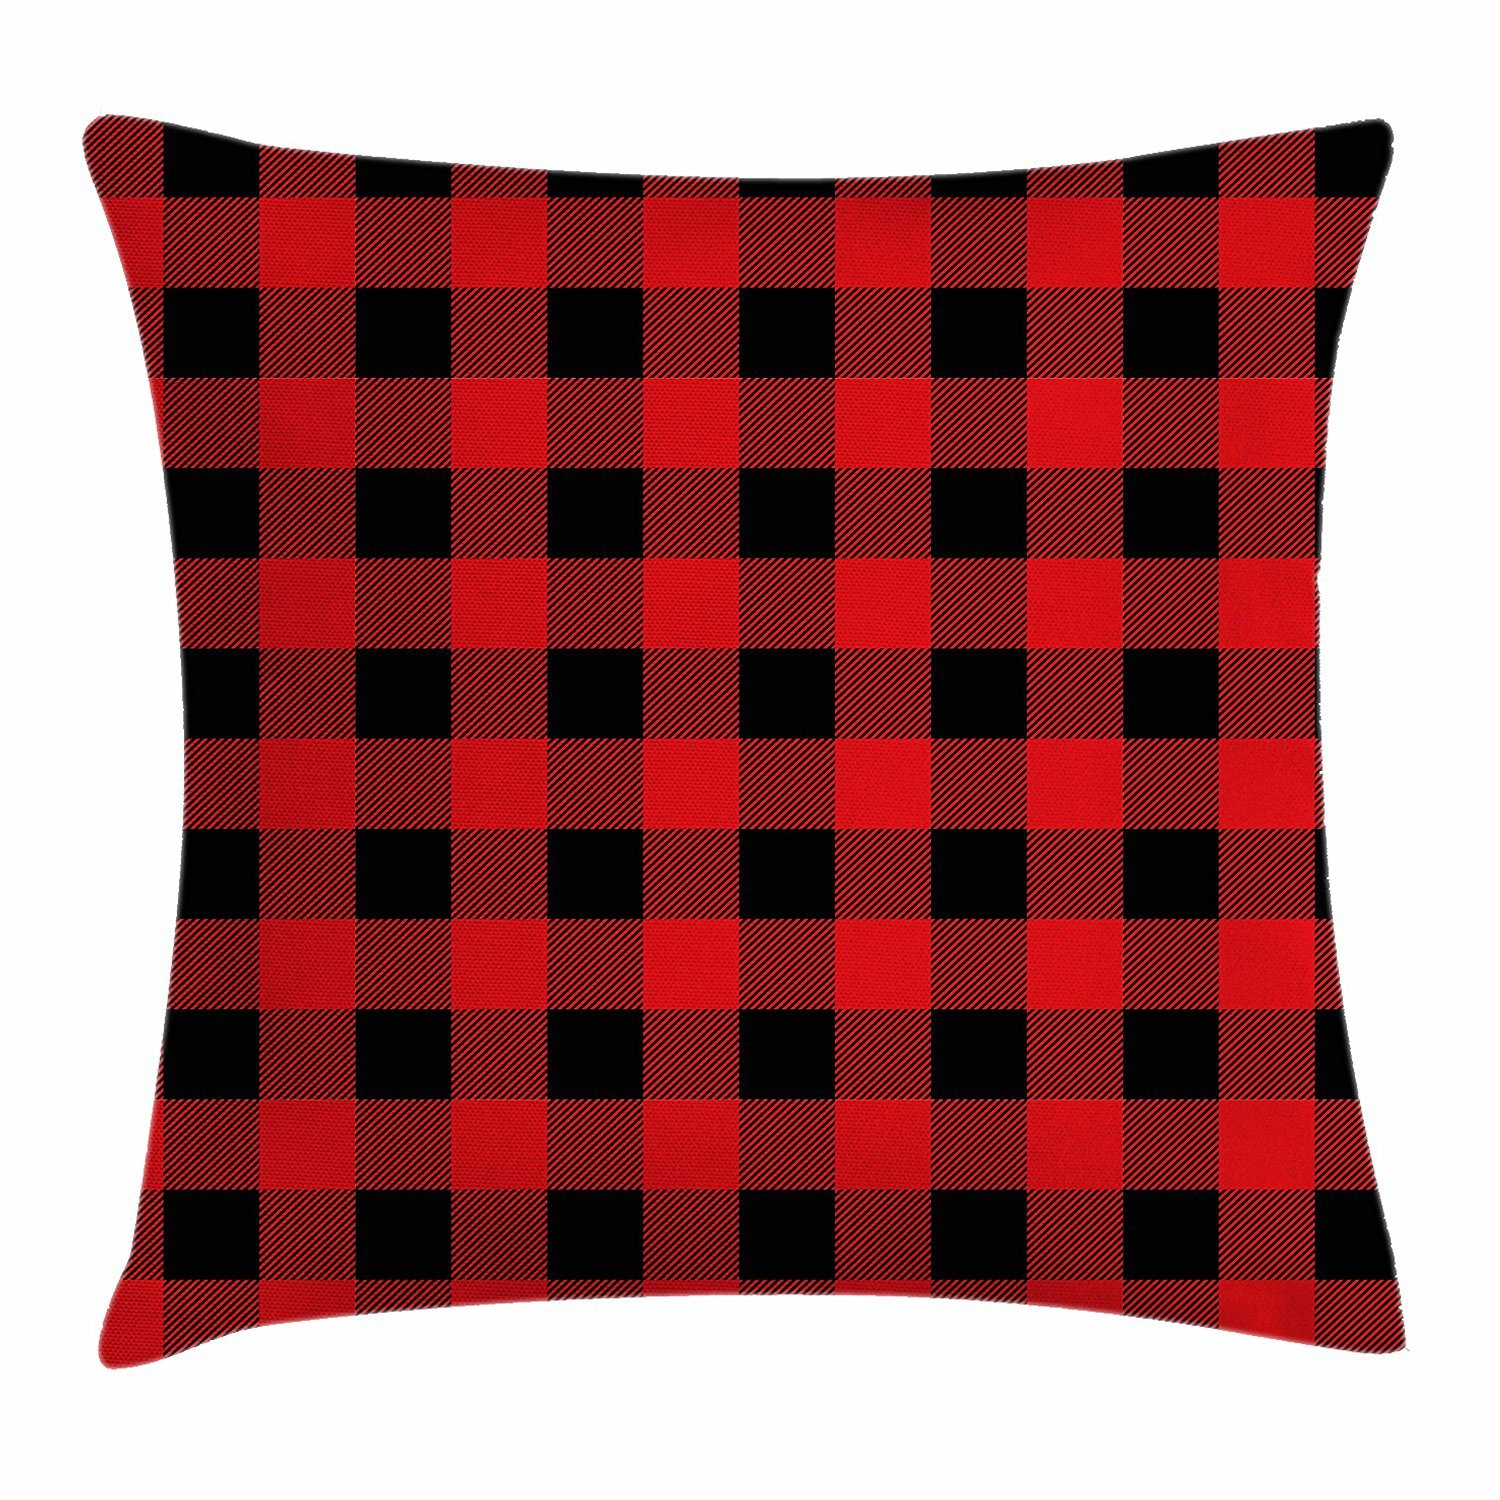 Plaid Throw Pillow Cushion Cover, Lumberjack Fashion Buffalo Style Checks Pattern Retro Style with Grid Composition, Decorative Square Accent Pillow Case, 18 X 18 inches, Scarlet Black Cool pillow